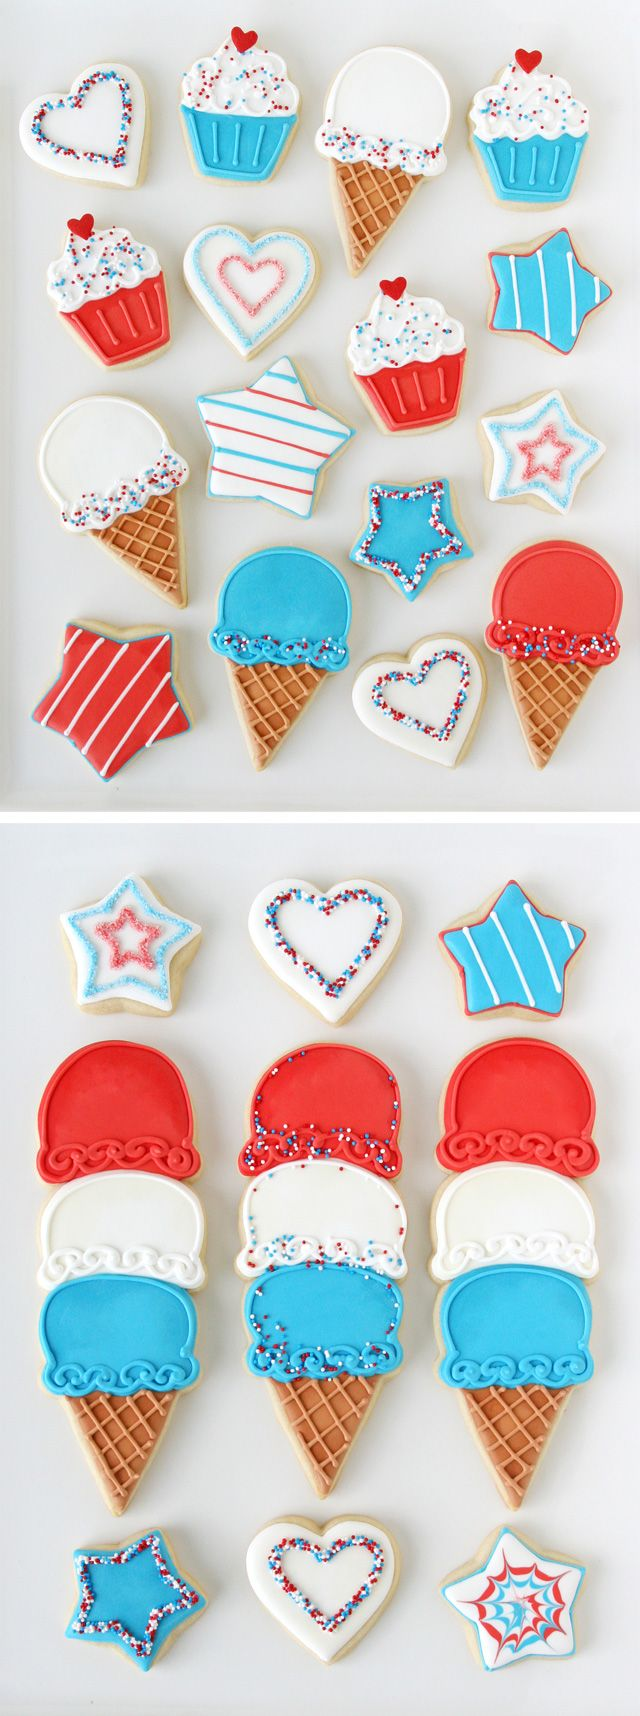 4th of July Cookies - GloriousTreats.com